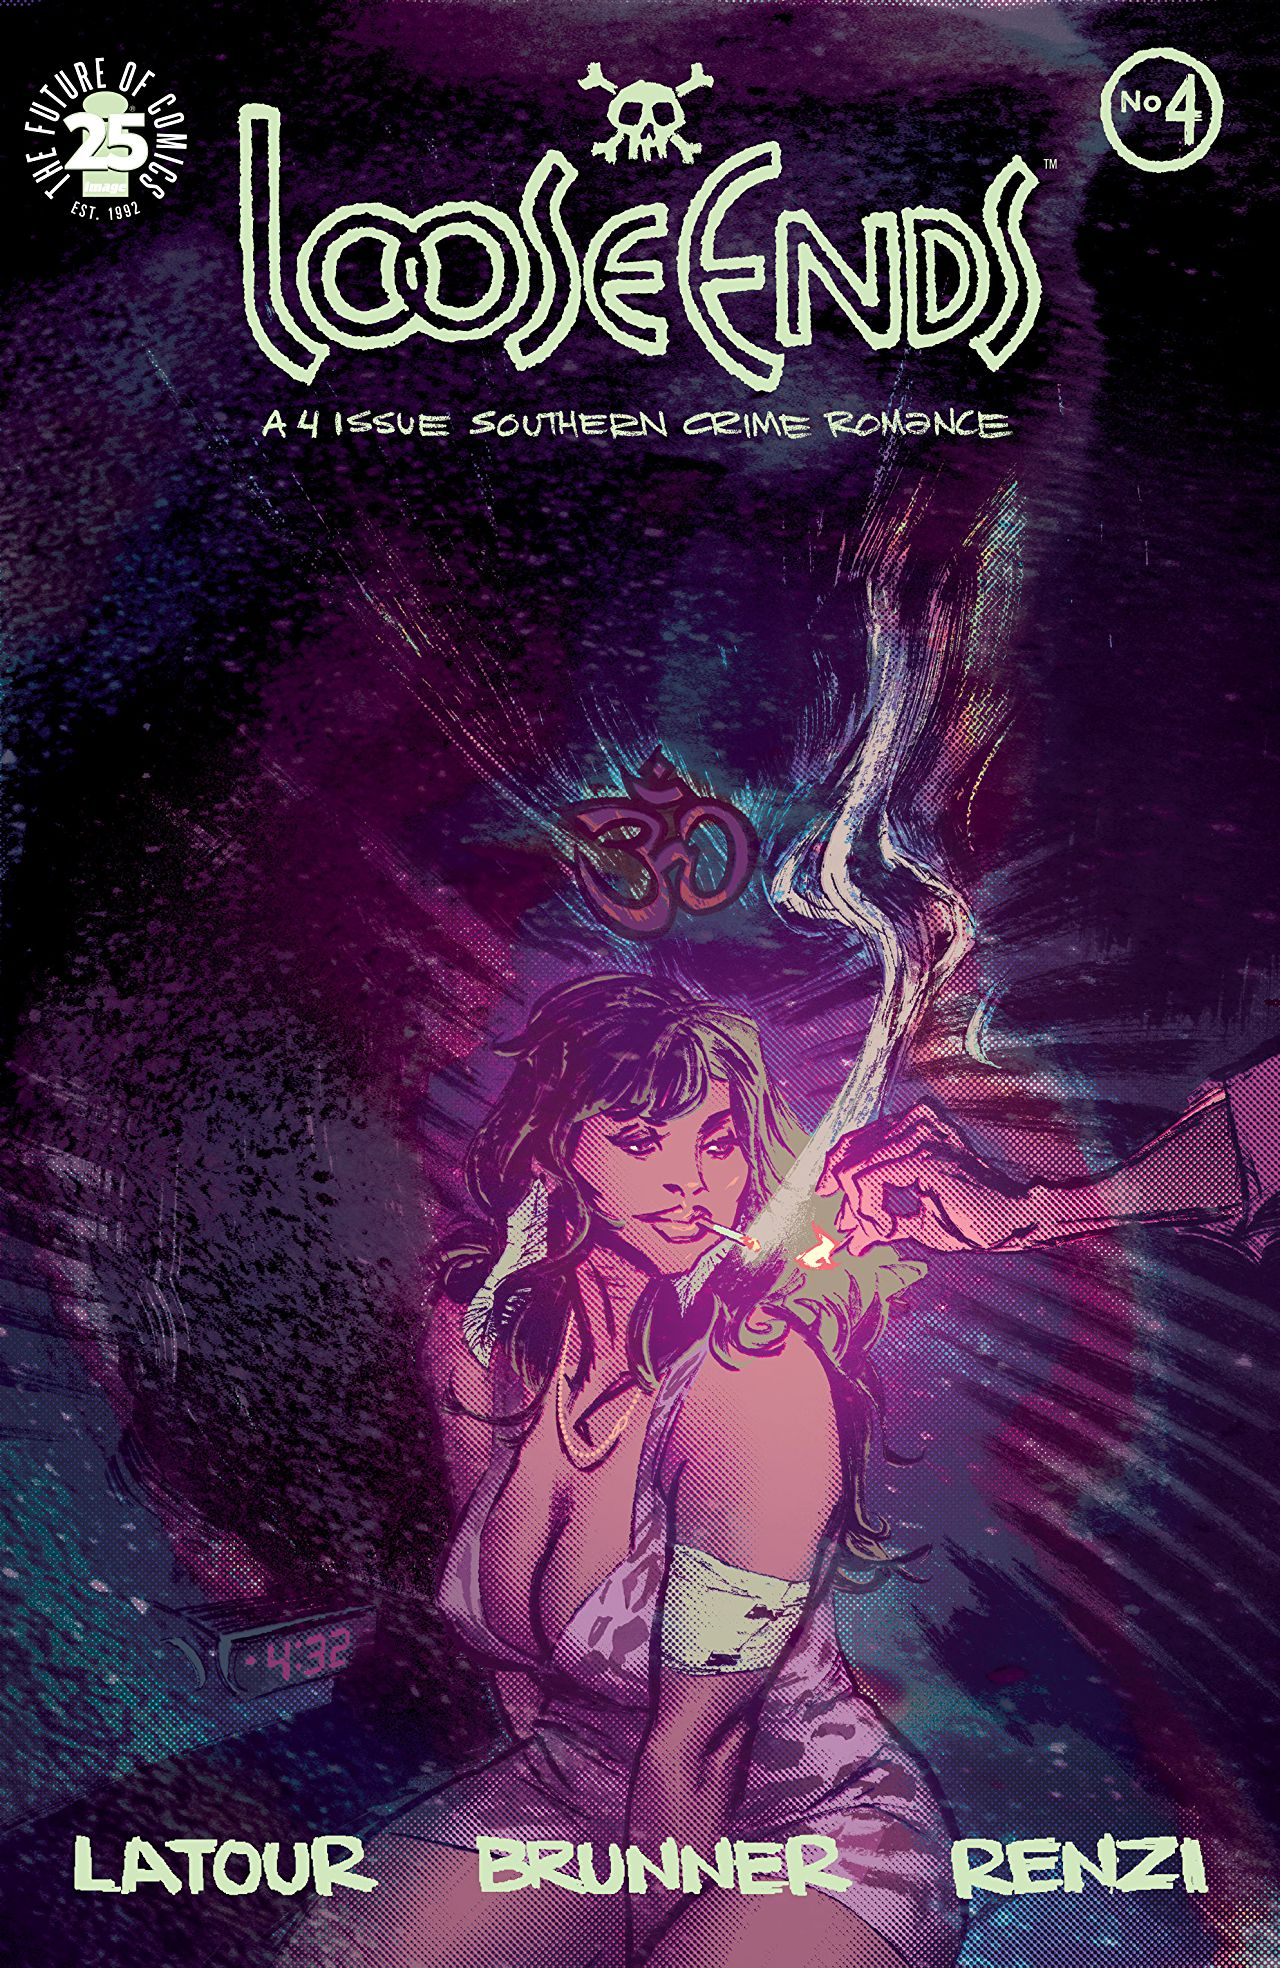 Loose Ends #4 Review